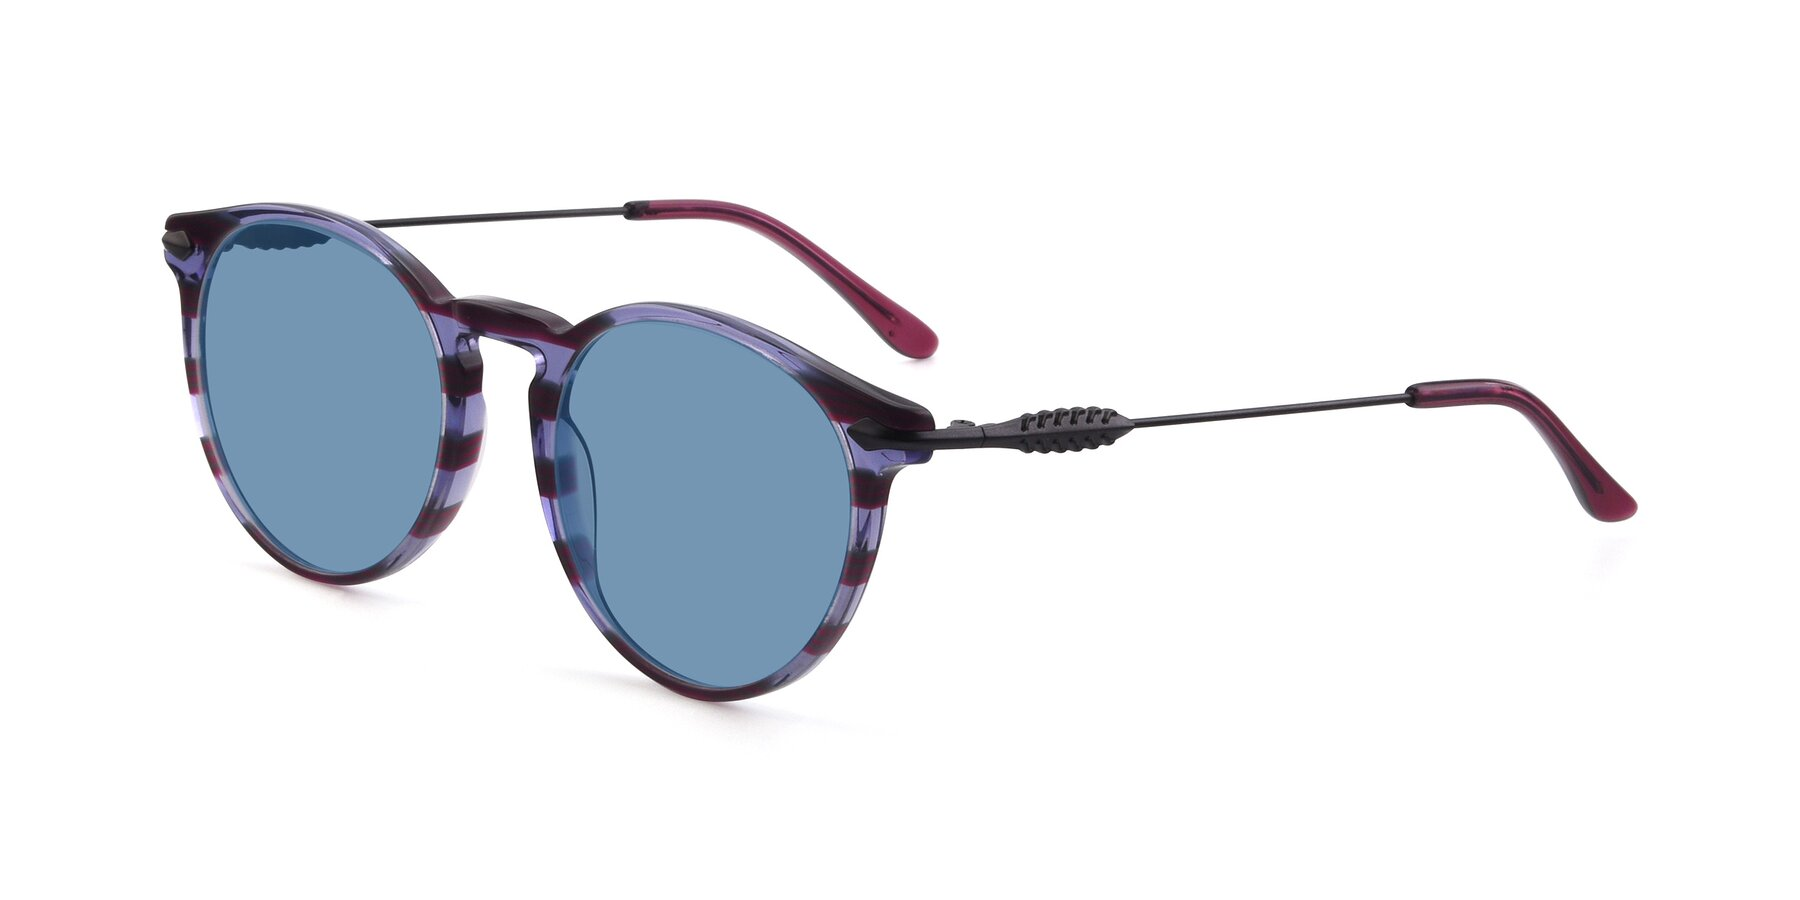 Angle of 17660 in Stripe Purple with Medium Blue Tinted Lenses